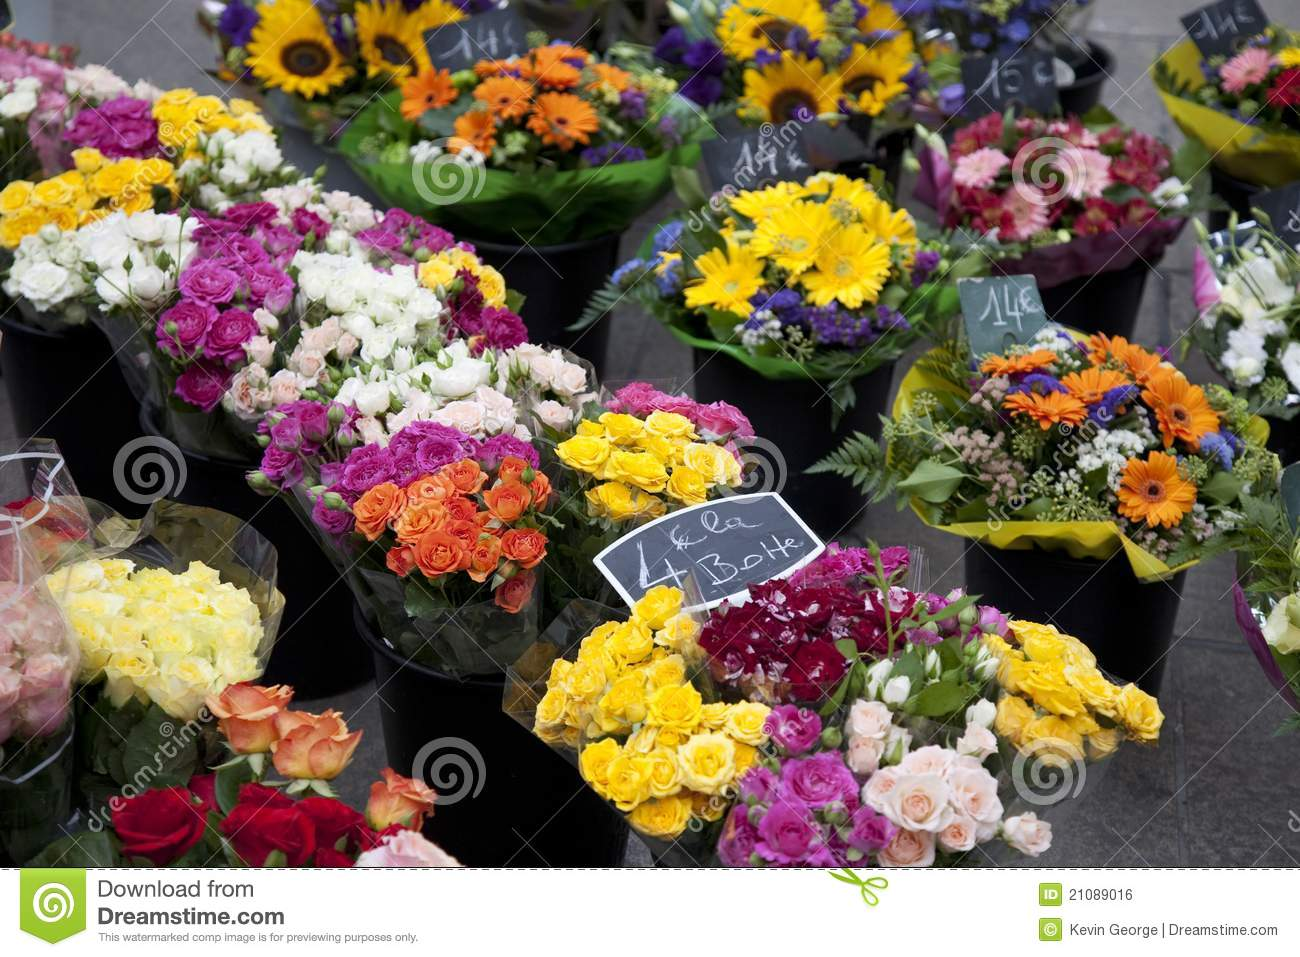 Bunches of flowers pictures free clip art royalty free stock Bunches Of Flowers Royalty Free Stock Image - Image: 21089016 clip art royalty free stock